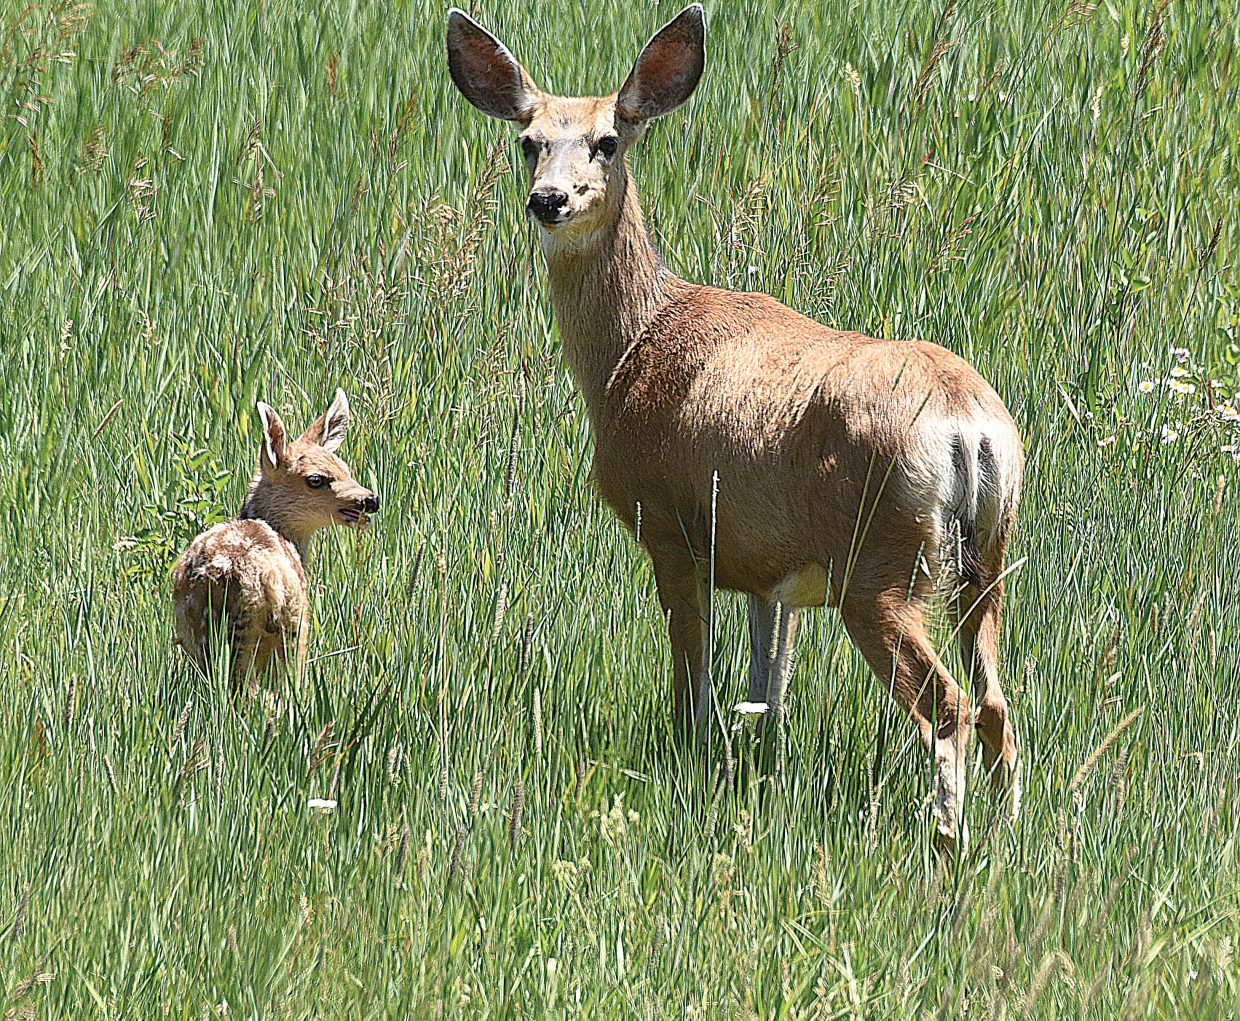 A deer and fawn hang out in a field near the Yampa Valley Medical Center on Thursday afternoon. The deer were waiting for another fawn before retreating to a safe spot away from traffic and the long lens of the photographer.